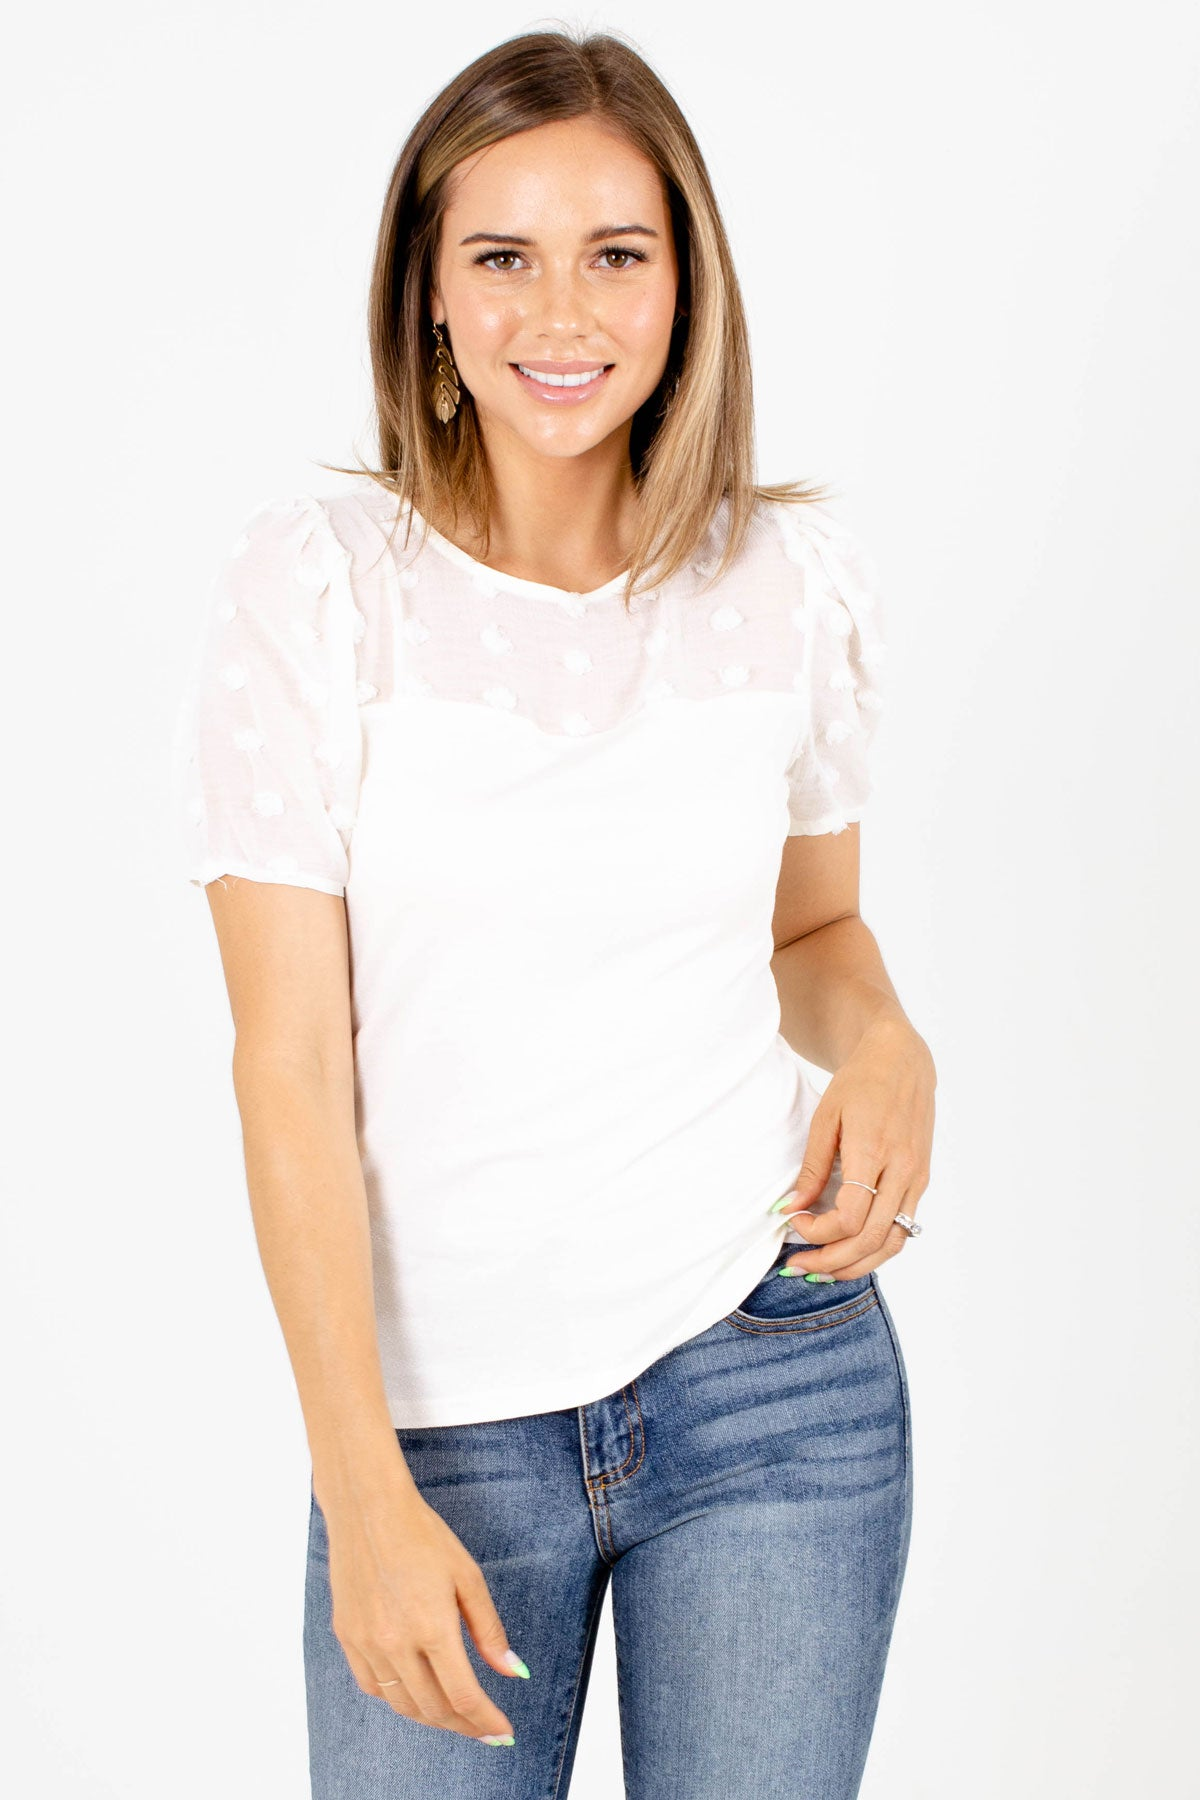 White Swiss Dot Material Boutique Blouses for Women